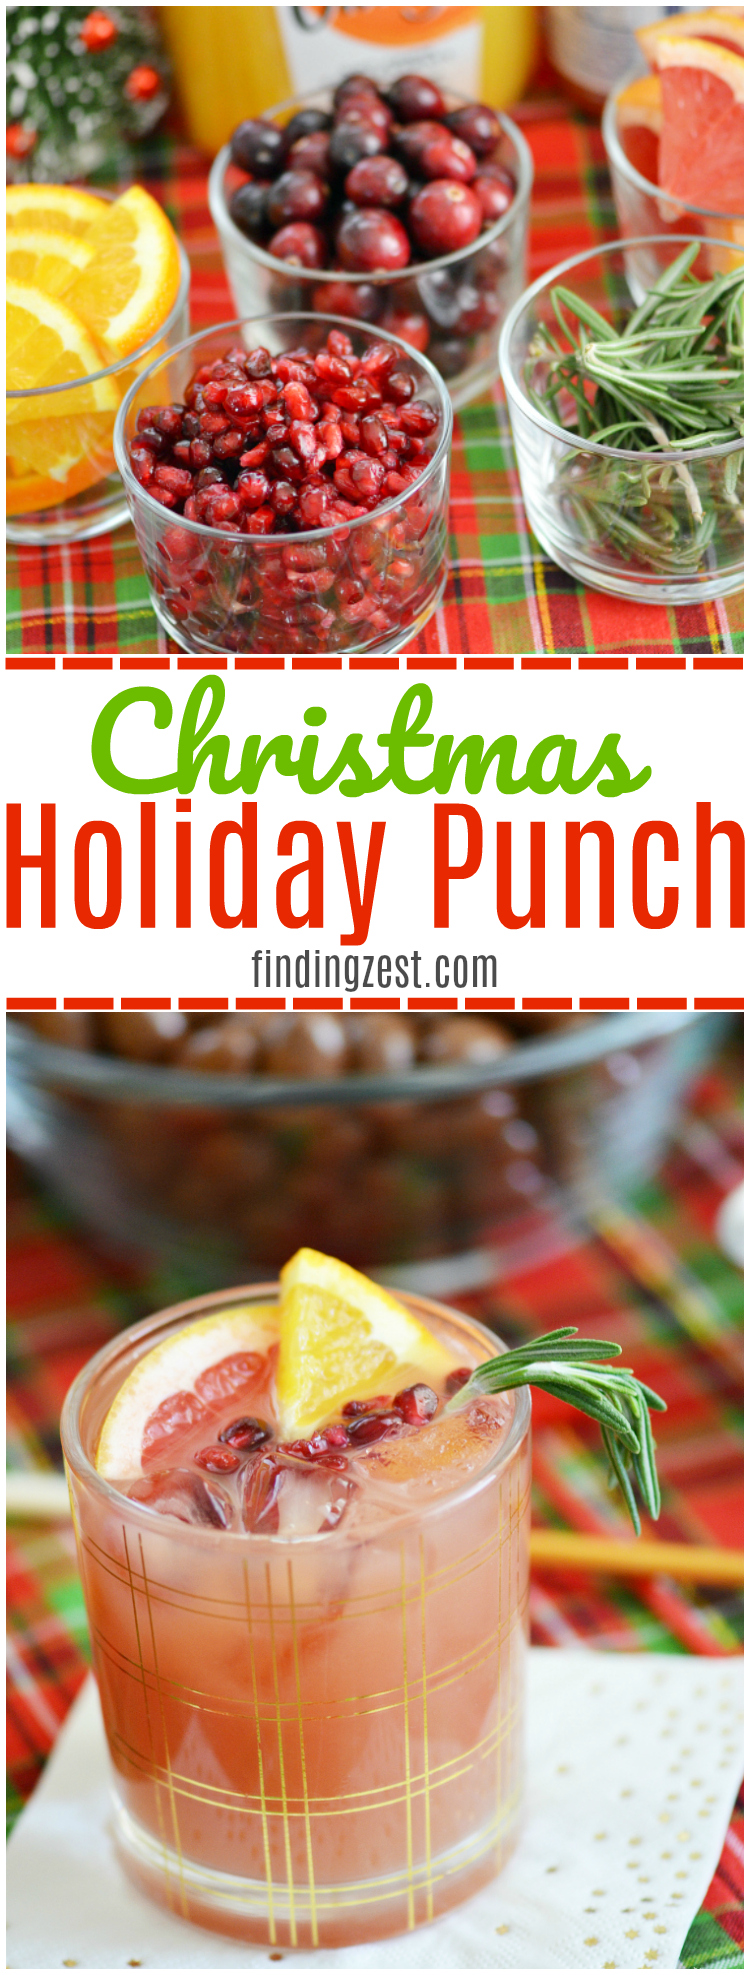 This Christmas Holiday Punch is so easy and refreshing! Wow your guests any time of day with a holiday drink and snack buffet, including this awesome punch recipe and flavorful snack mixes!